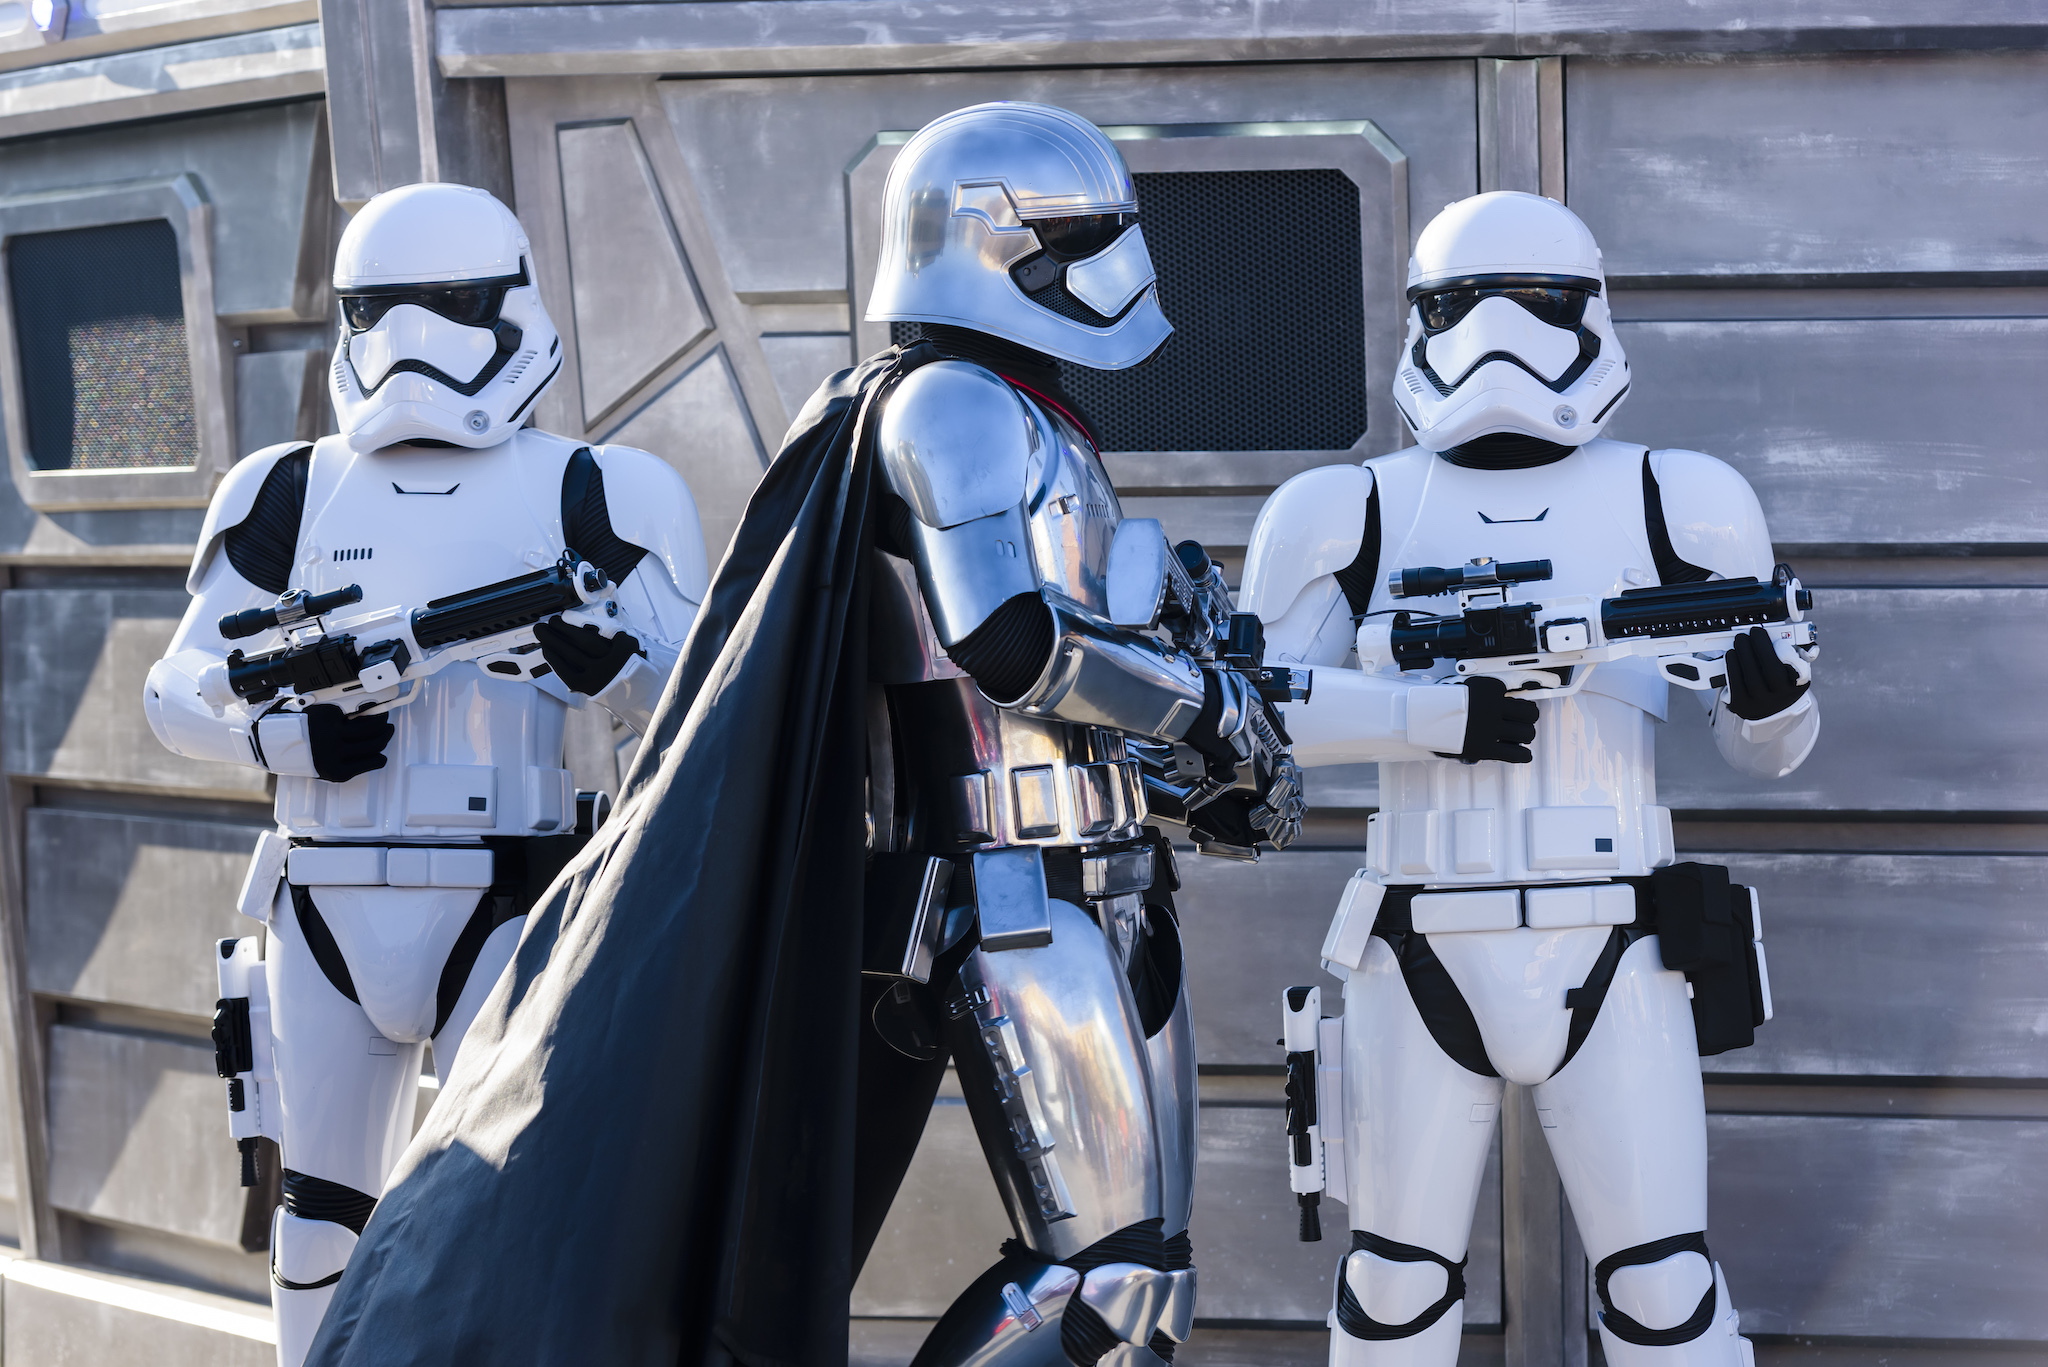 Do not reuse. Stormtroopers - Disneyland Paris, Legends of the Force campaign.